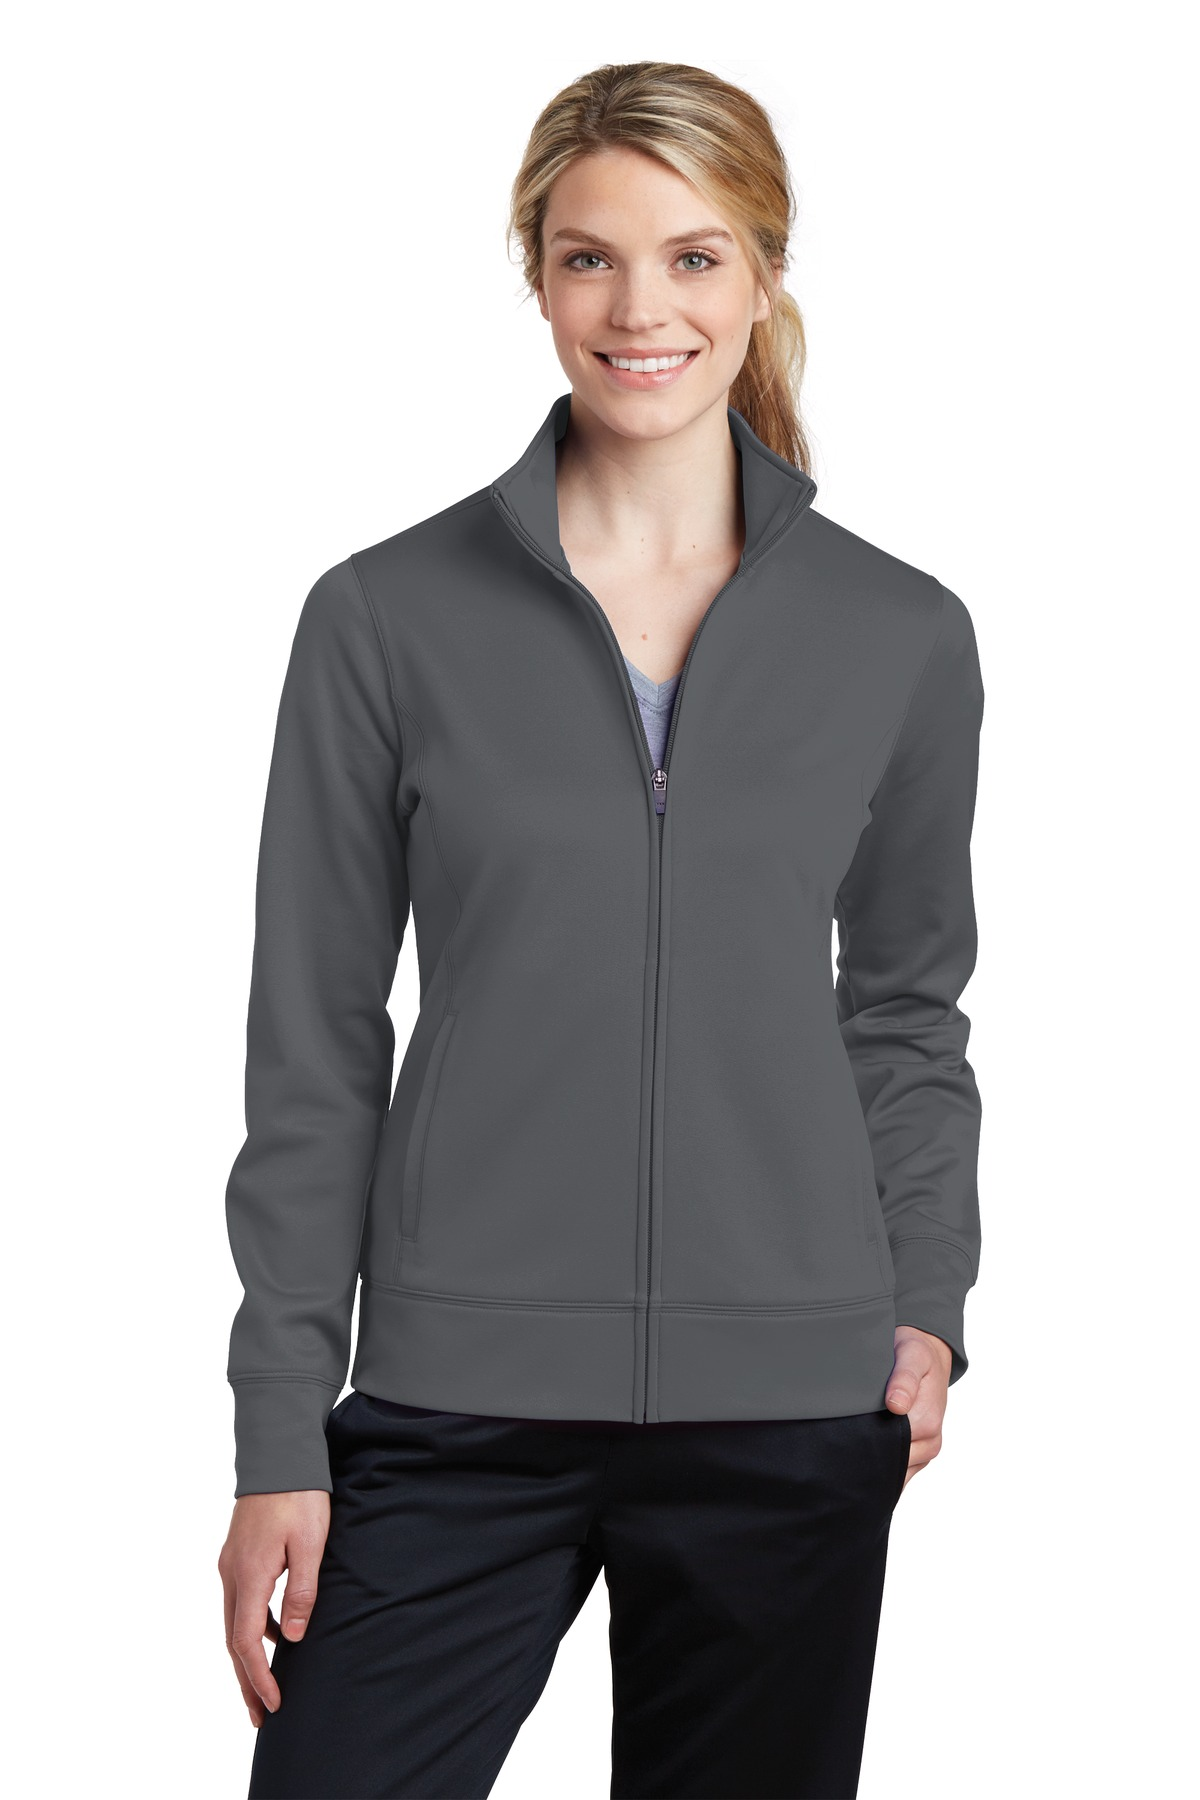 Sport Tek Ladies Sport Wick Lst241 Fleece Full Zip Jacket Women S Fleece ✅ browse our daily deals for even more savings! sport tek ladies sport wick lst241 fleece full zip jacket